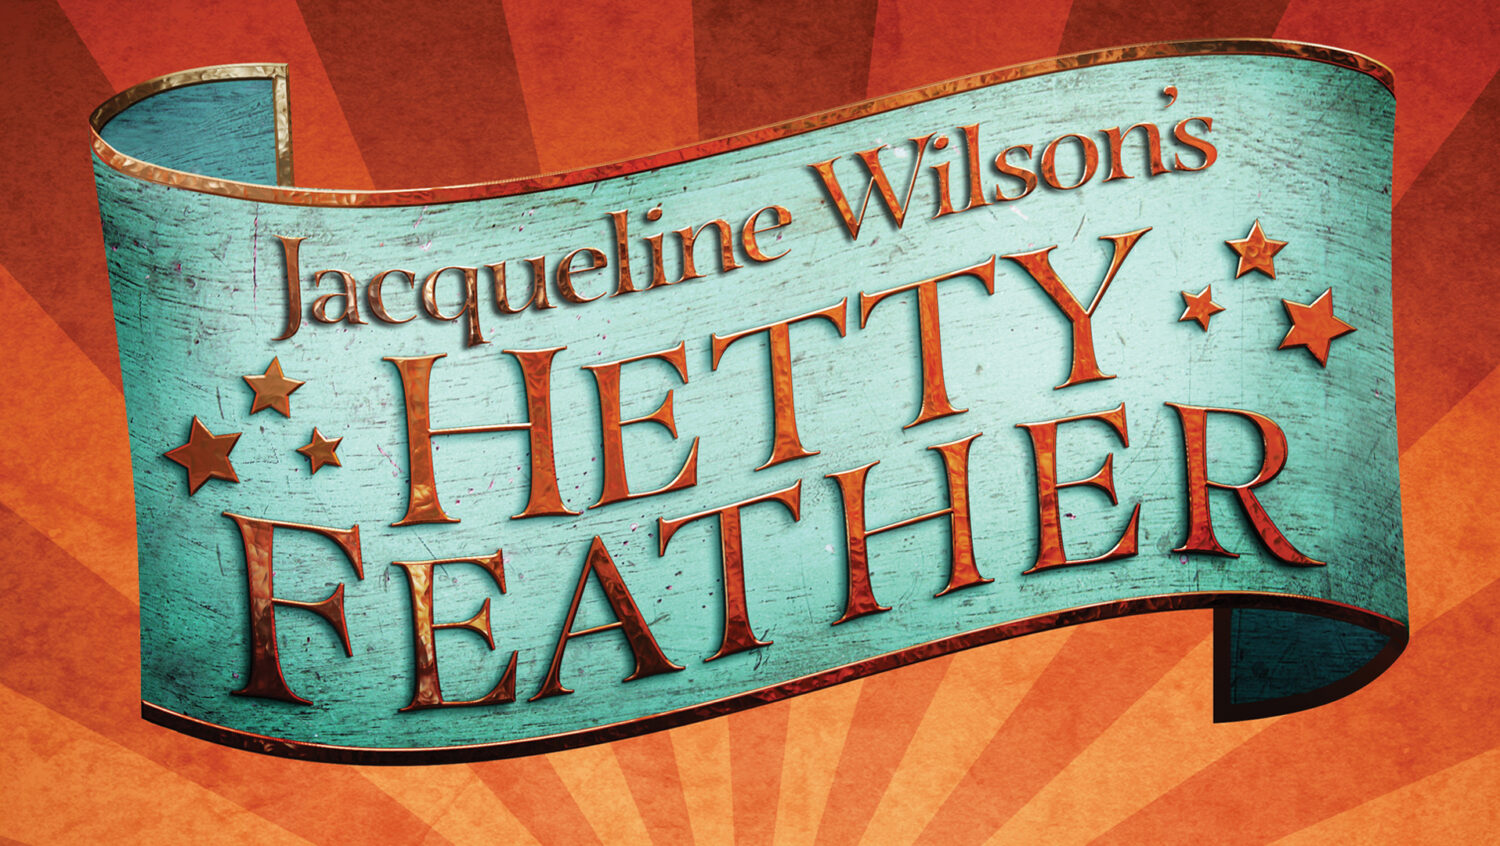 Hetty Feather - Stream now on Stage 2 View